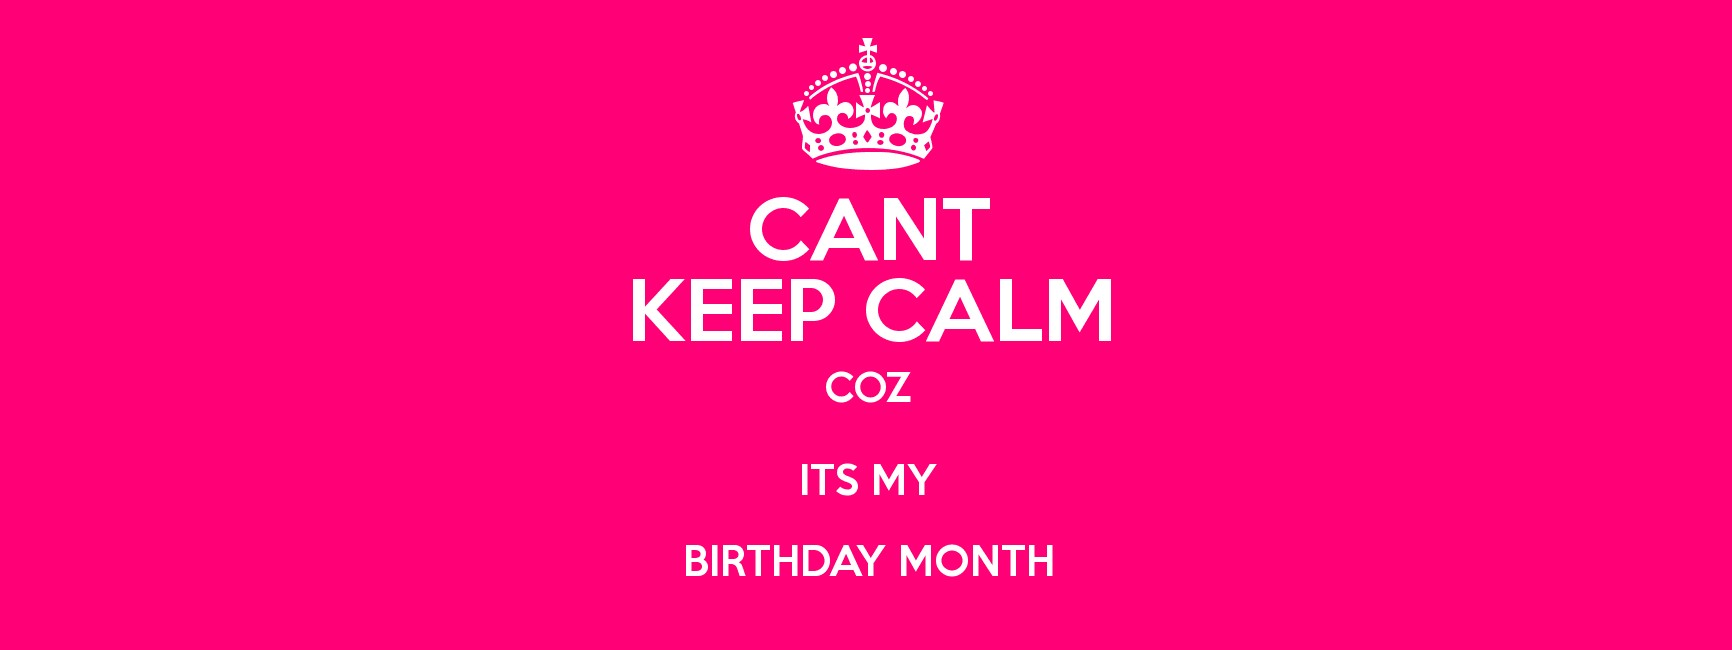 birthday month posters ; 4108784